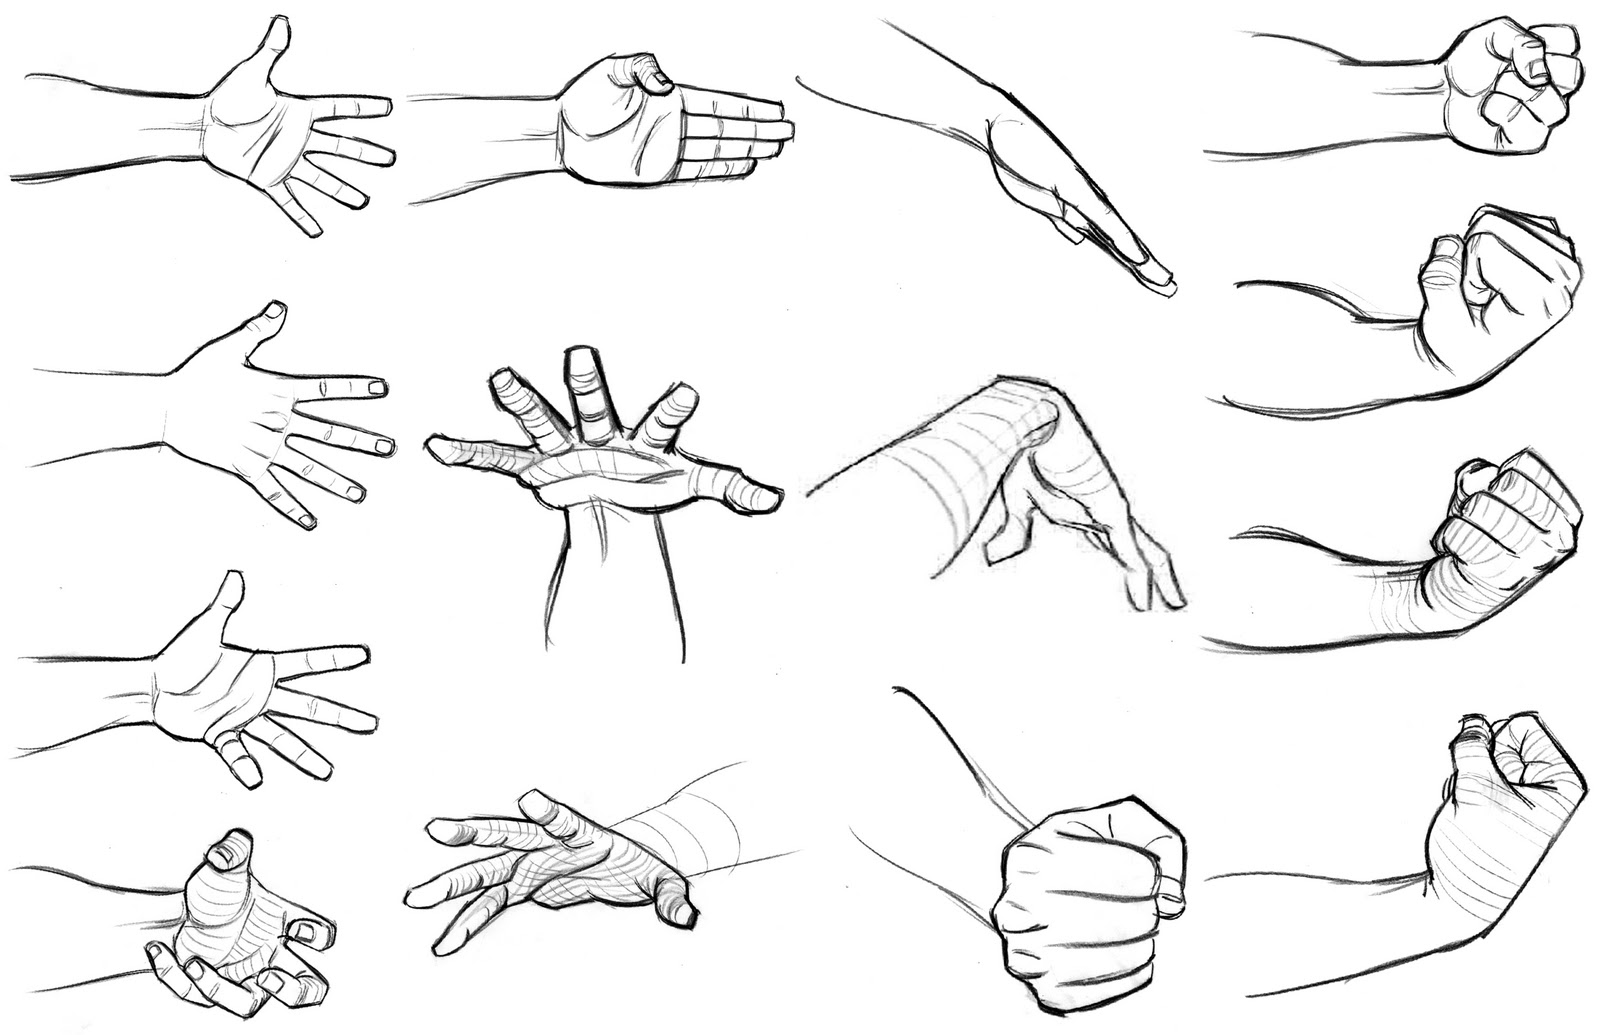 This is a picture of Lucrative Hand Drawing Poses